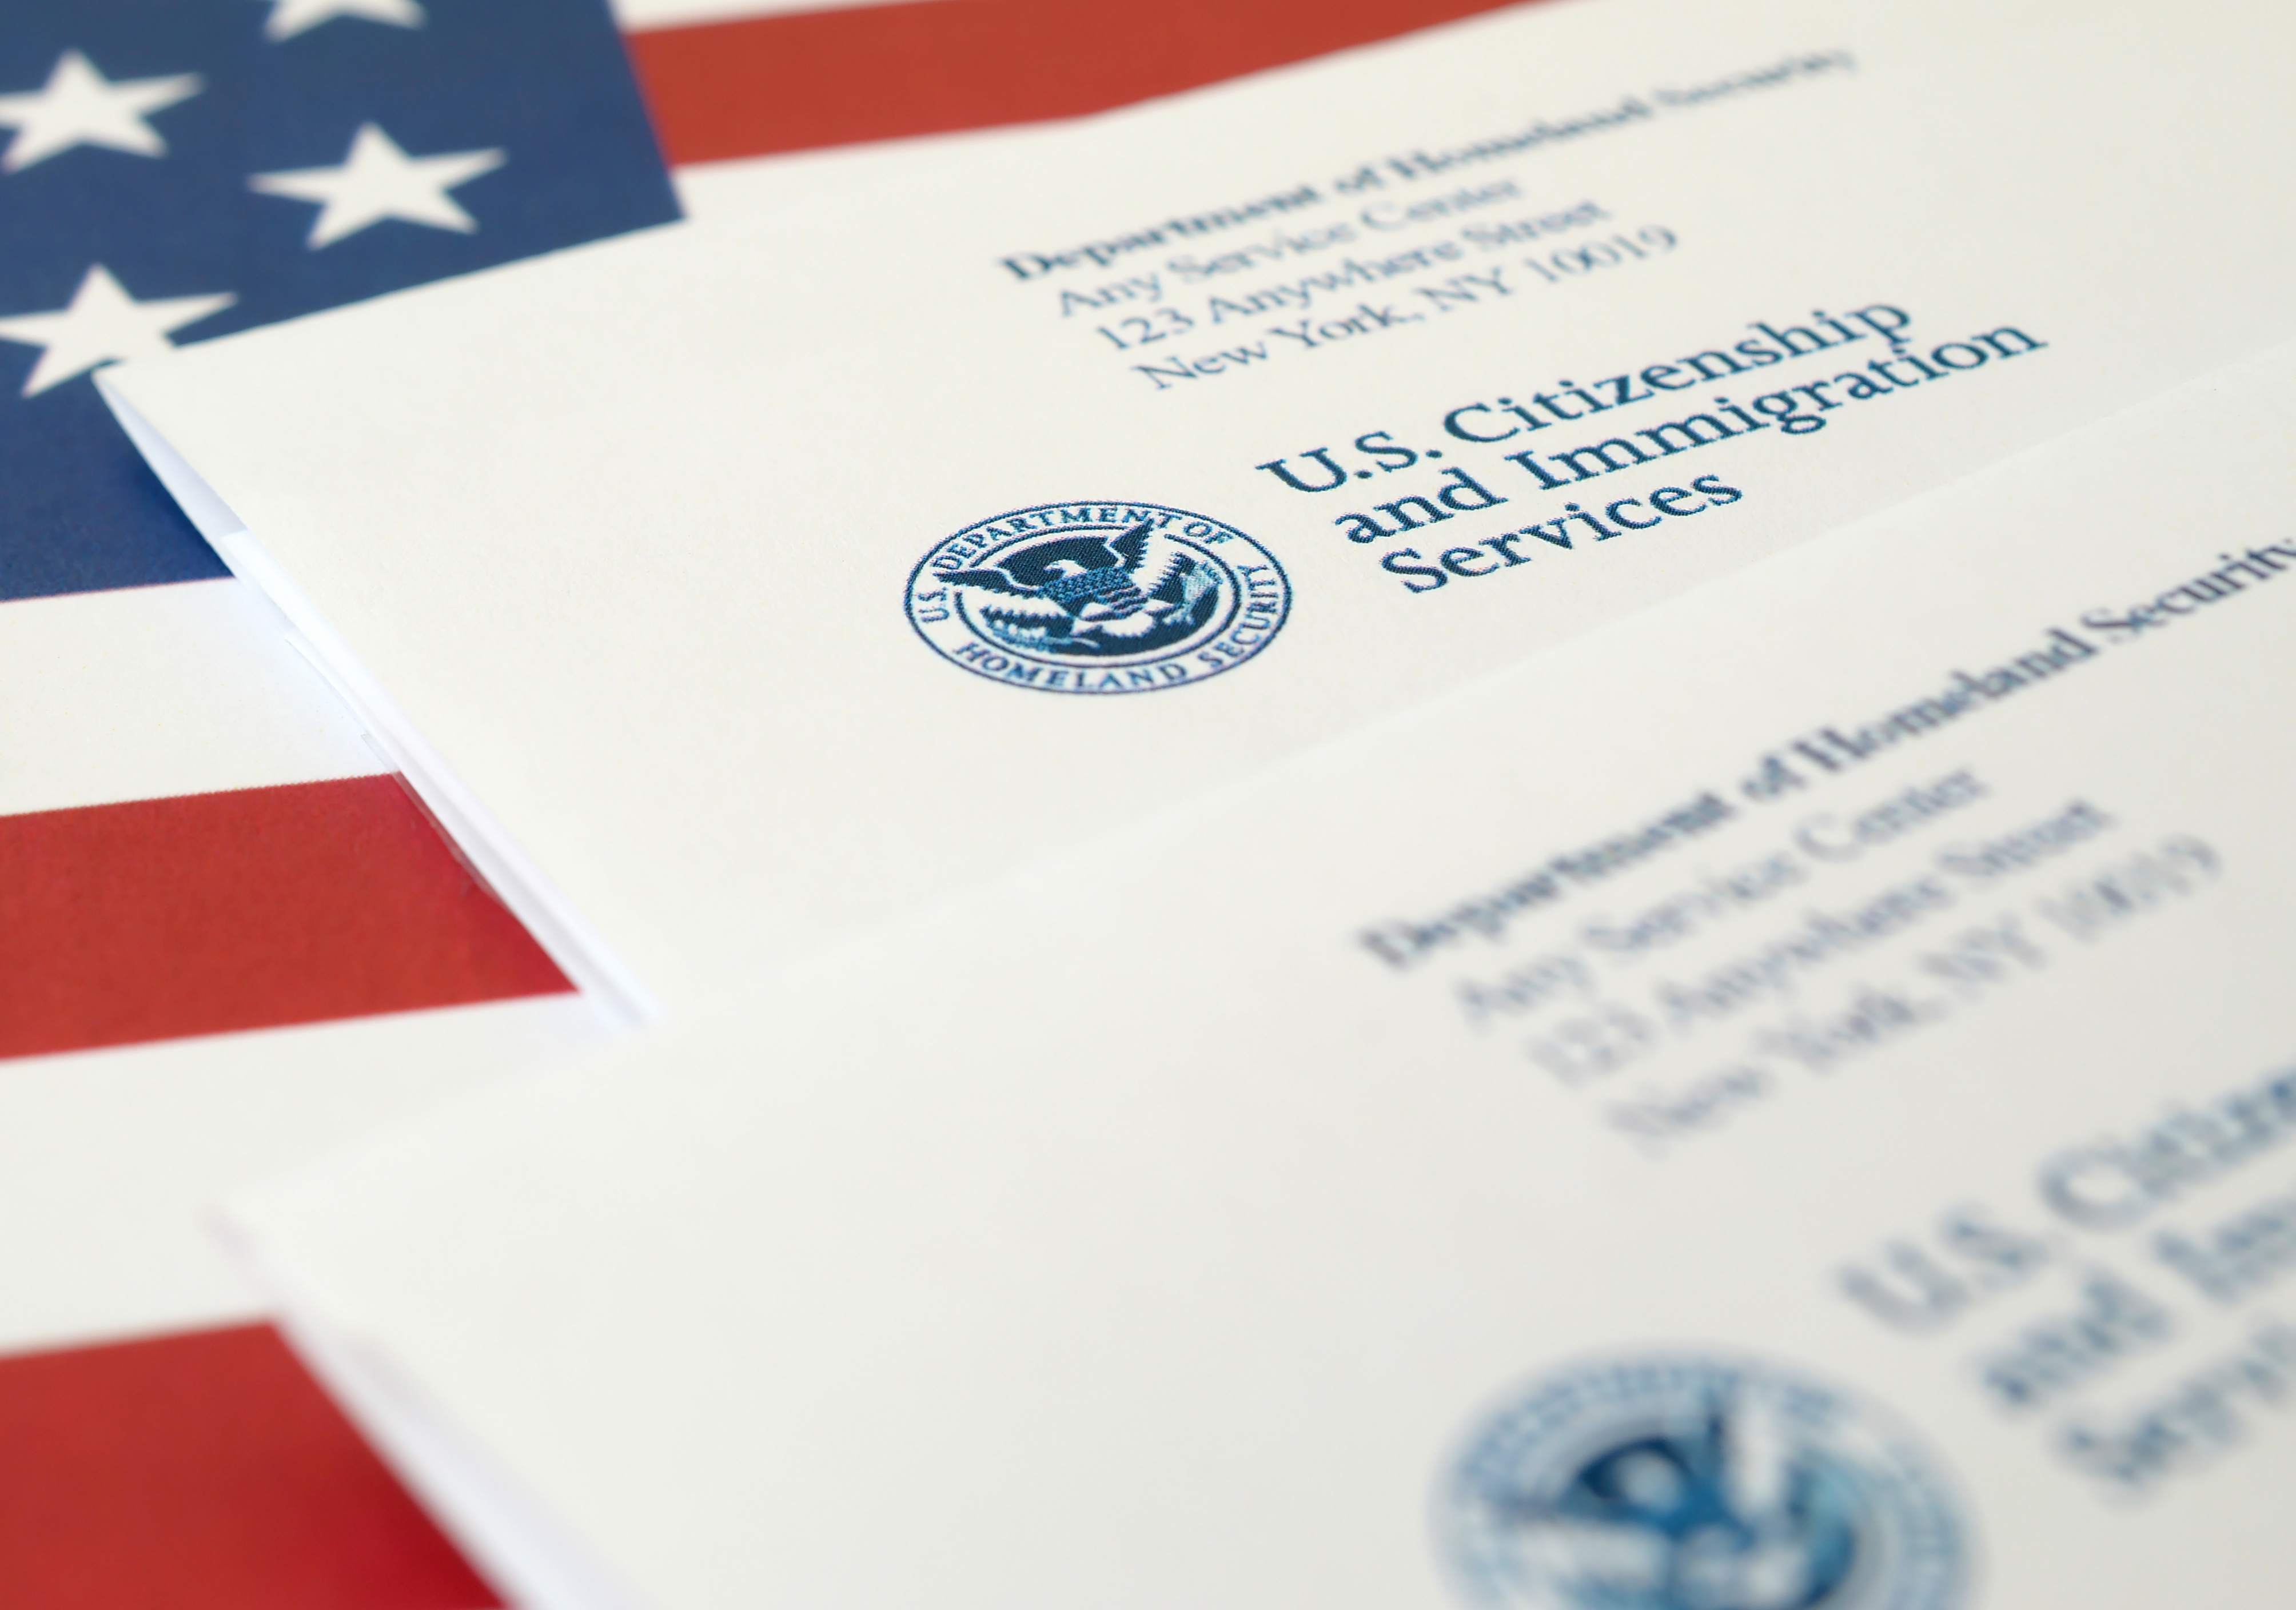 USCIS Announces Flexibilities for Certain Foreign Student Applicants Affected by Delayed Receipt Notices for Form I-765, Application for Employment Authorization